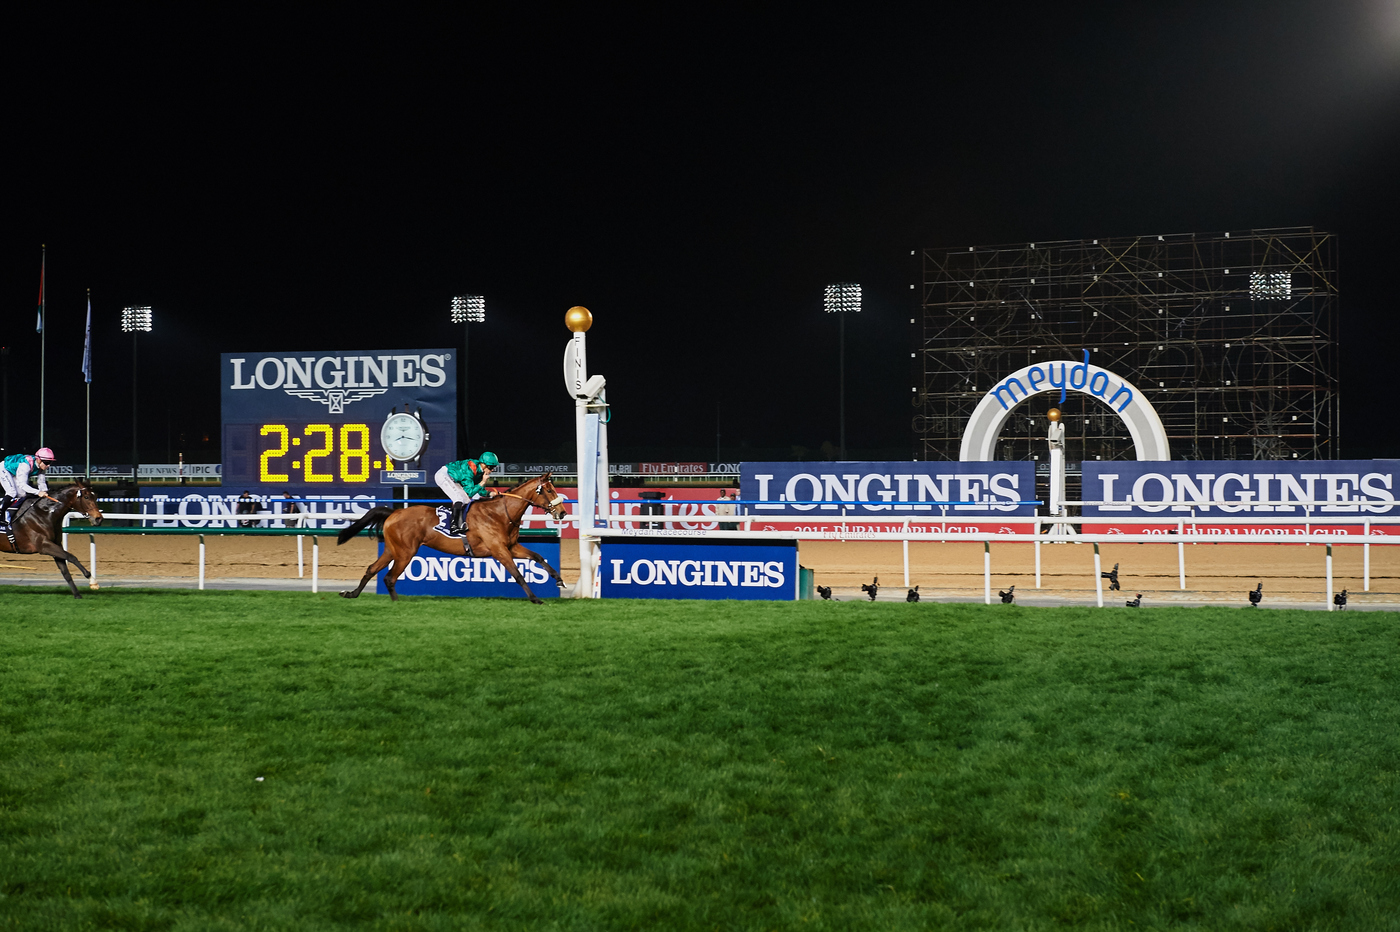 Longines Flat Racing Event: Longines elegantly celebrates the 20th edition of the Dubai World Cup 6